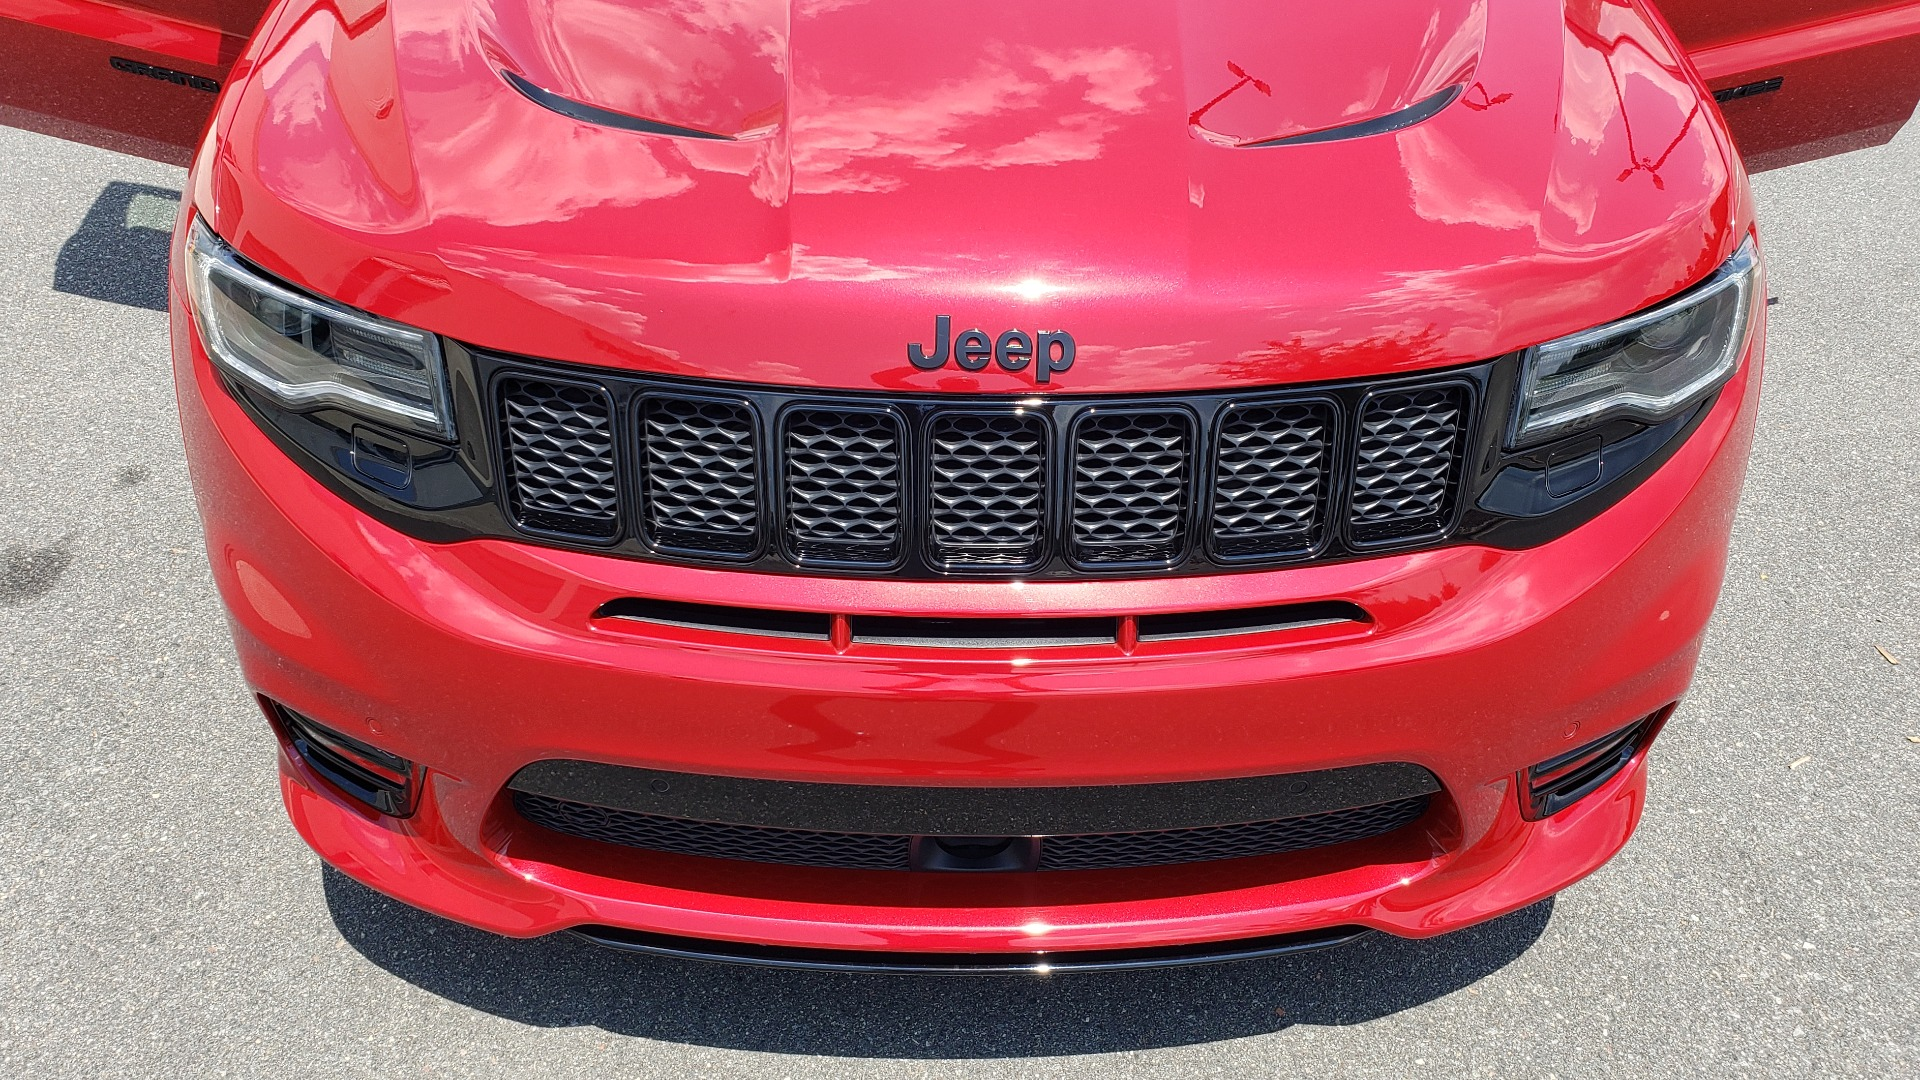 Used 2018 Jeep GRAND CHEROKEE SRT 4X4 / 6.4L HEMI (475HP) / NAV / SUNROOF / H/K SND / REARVIEW for sale Sold at Formula Imports in Charlotte NC 28227 33